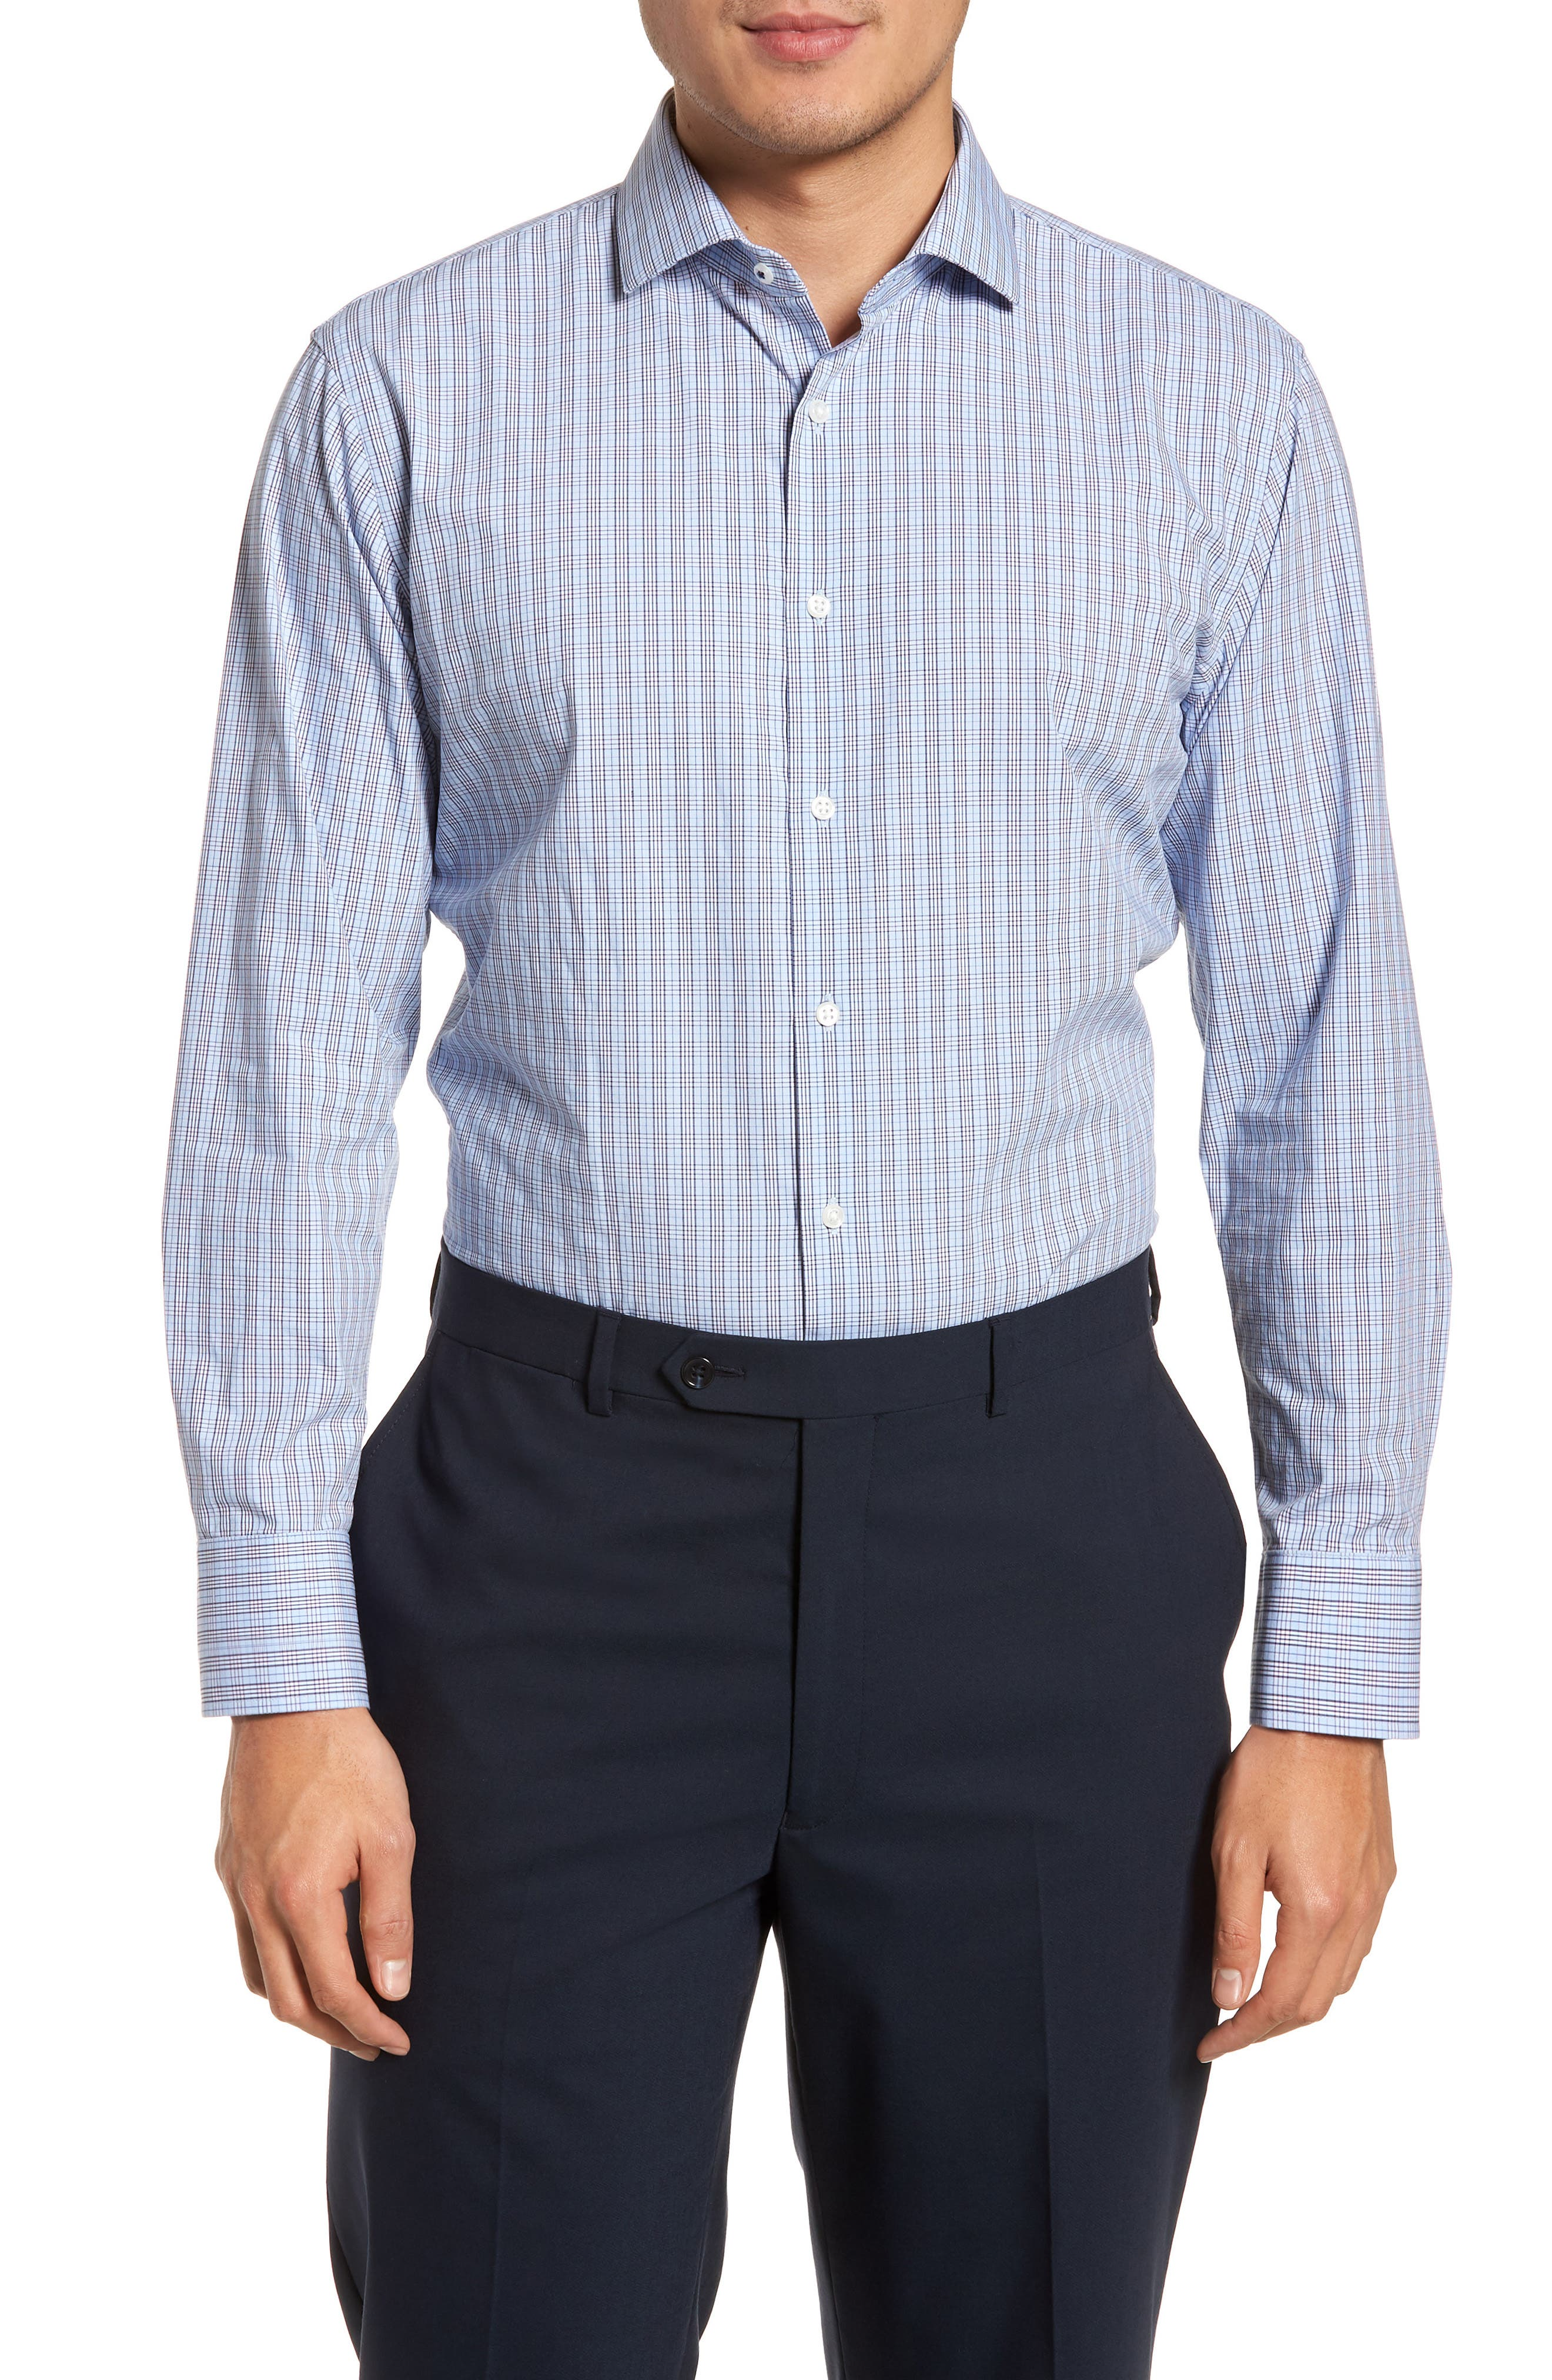 Main Image - Nordstrom Men's Shop Tech-Smart Trim Fit Grid Dress Shirt